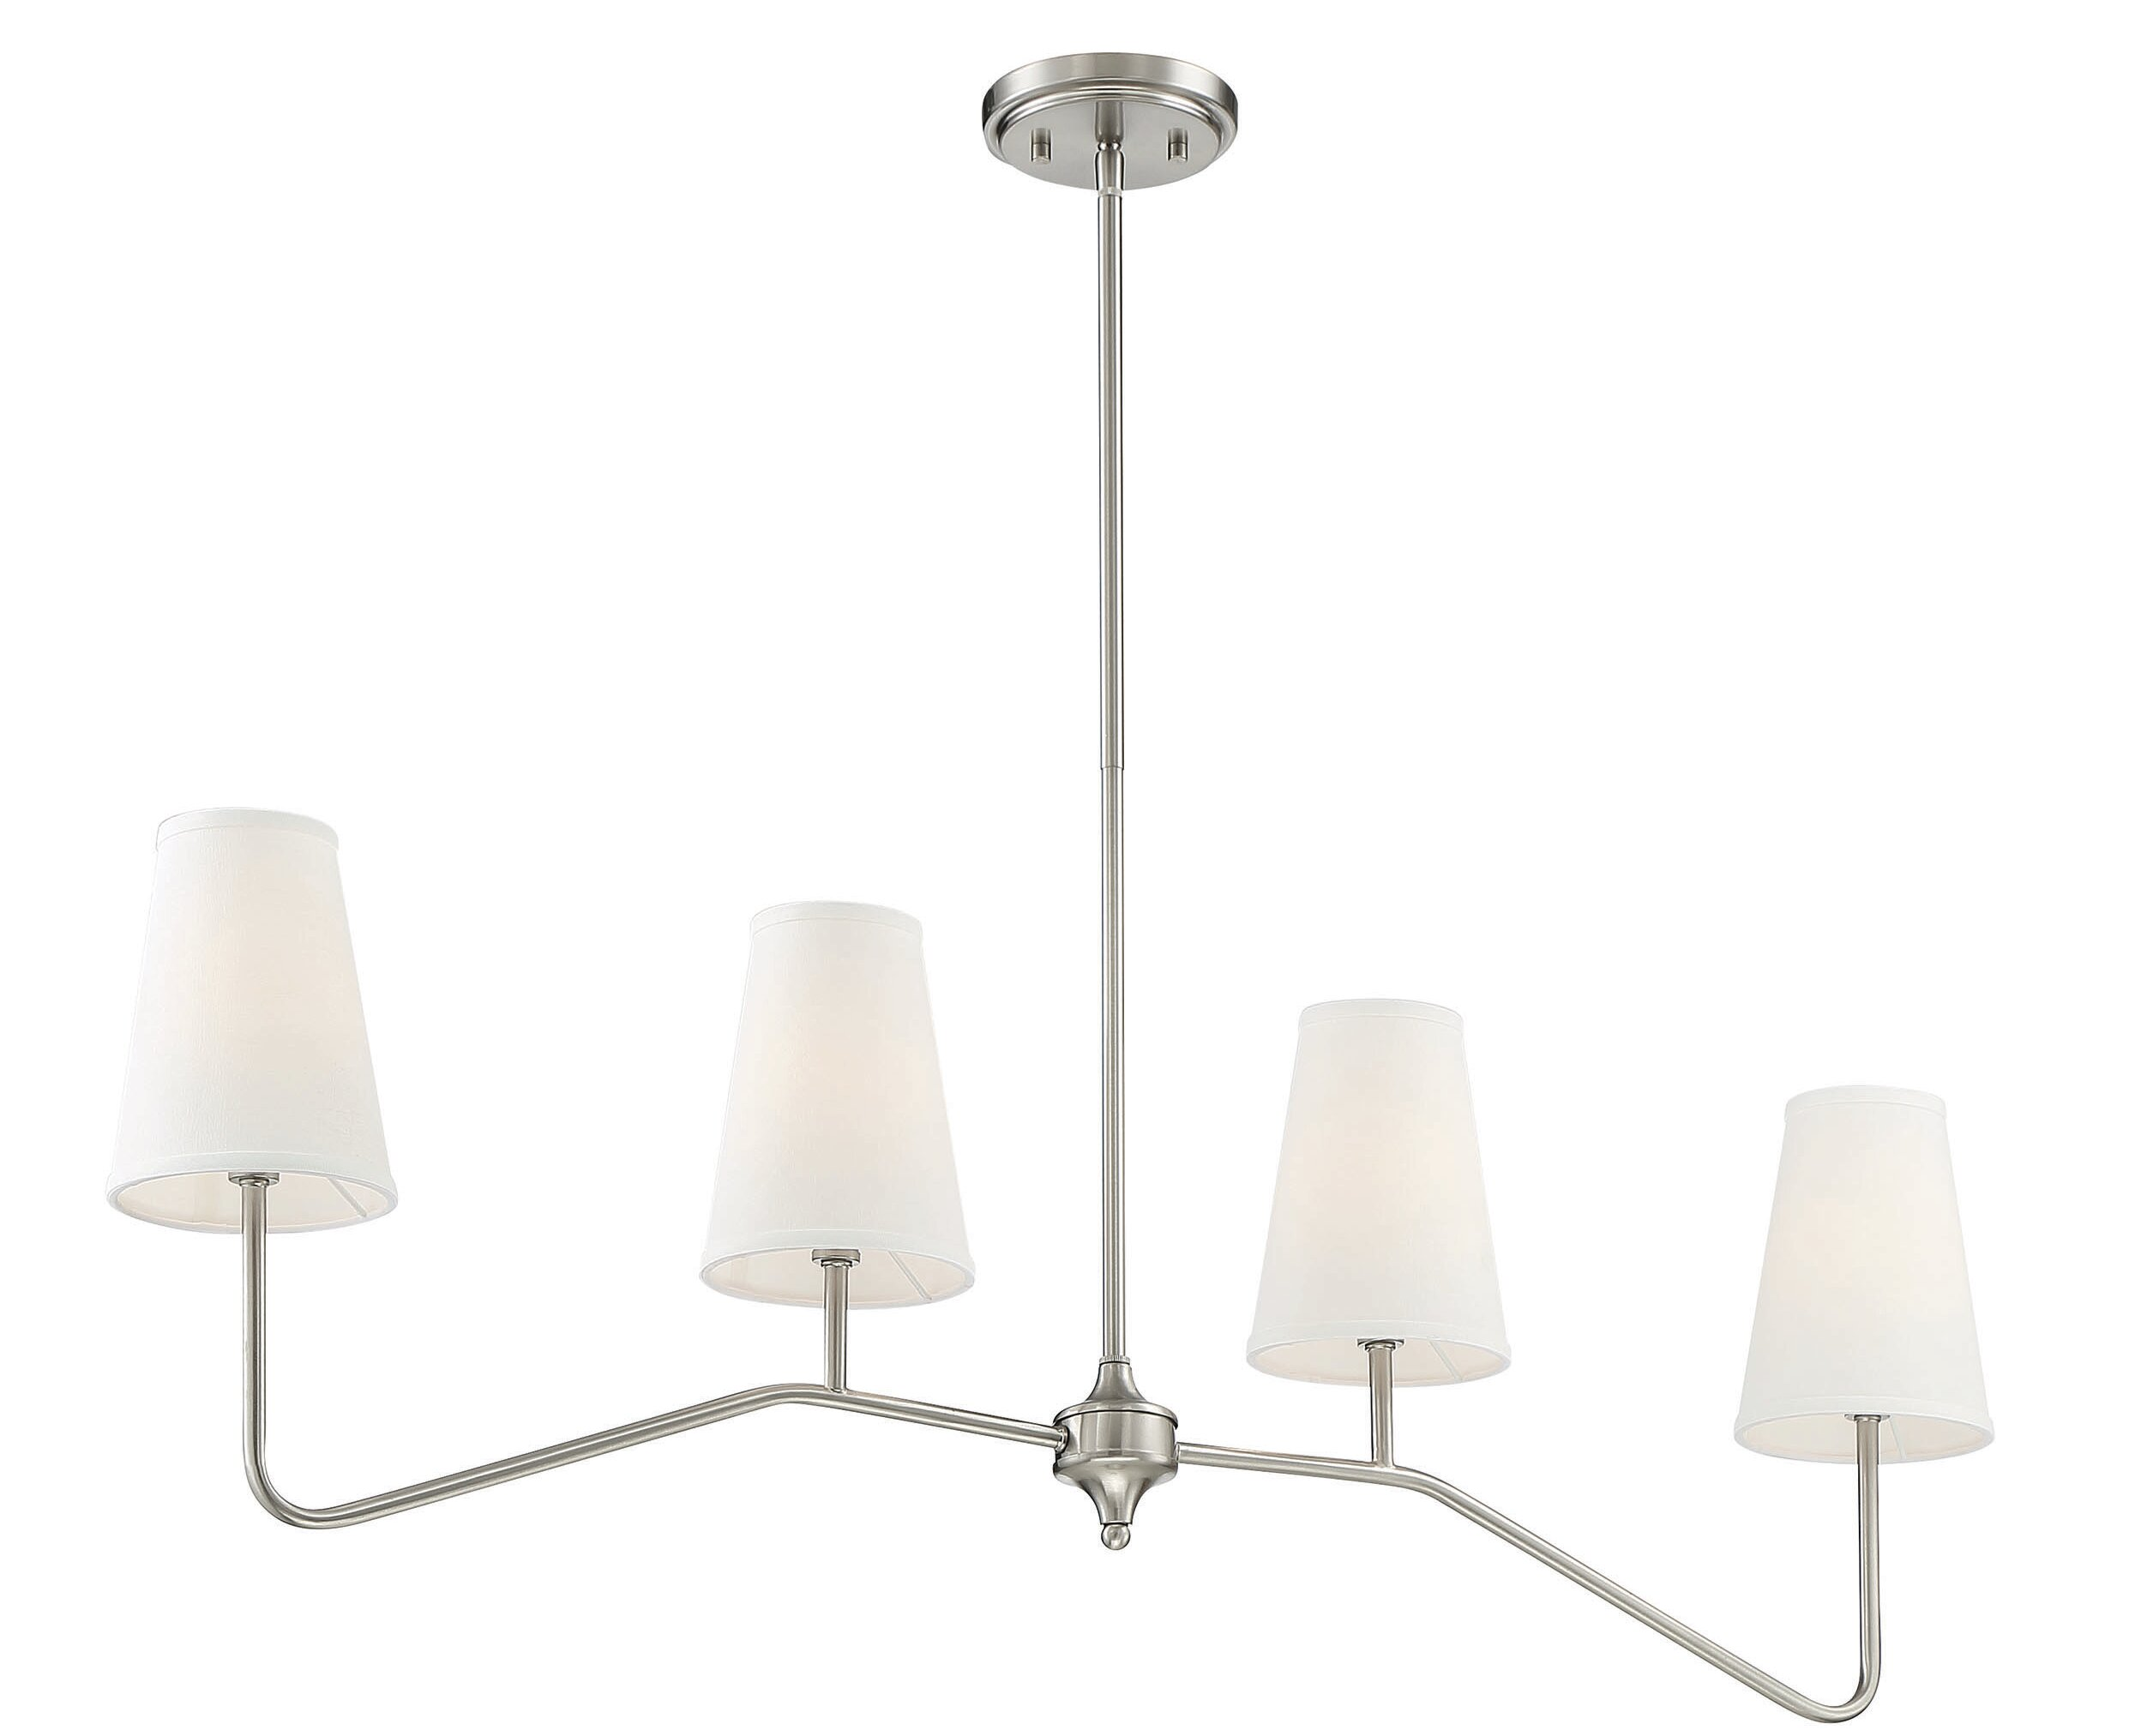 Alleyne 10 - Light Kitchen Island Linear Pendant